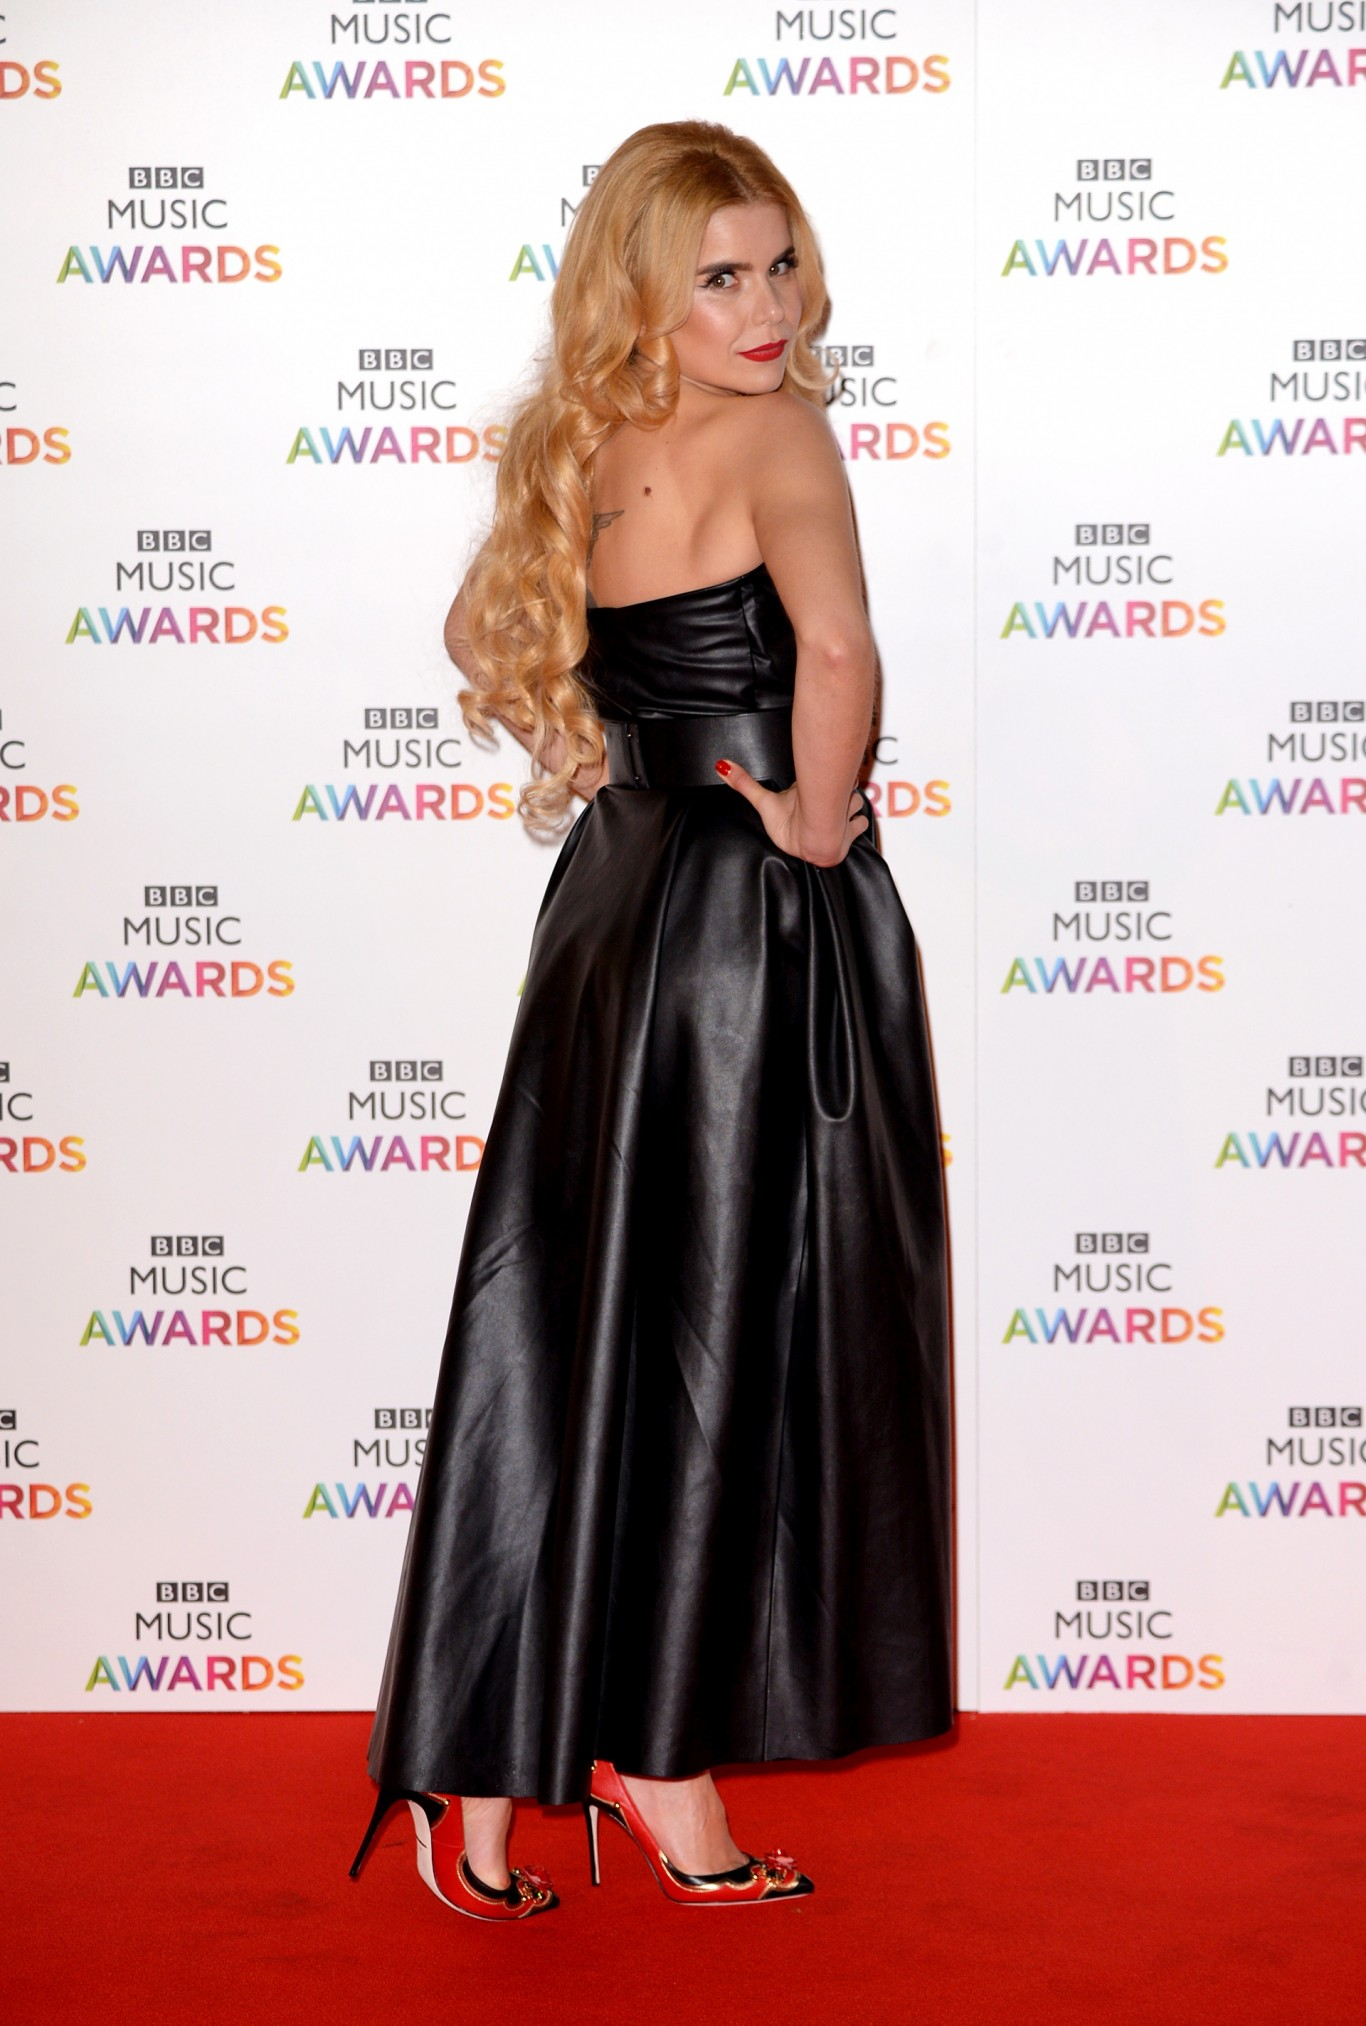 paloma-faith-bbc-music-awards-london-december-2014